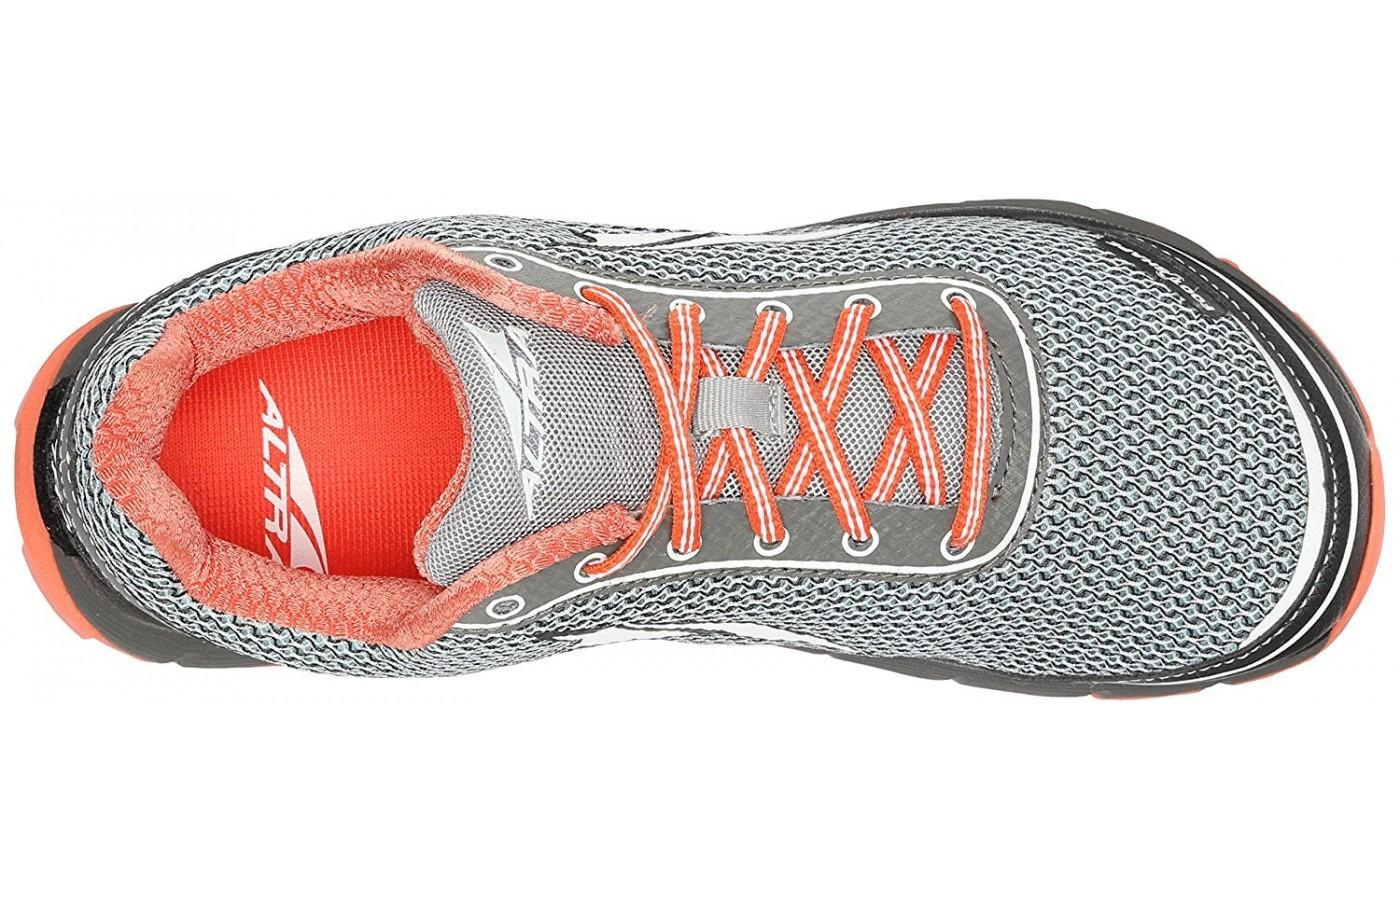 An improved lacing system keeps the Lone Peak 2.5 feeling snug